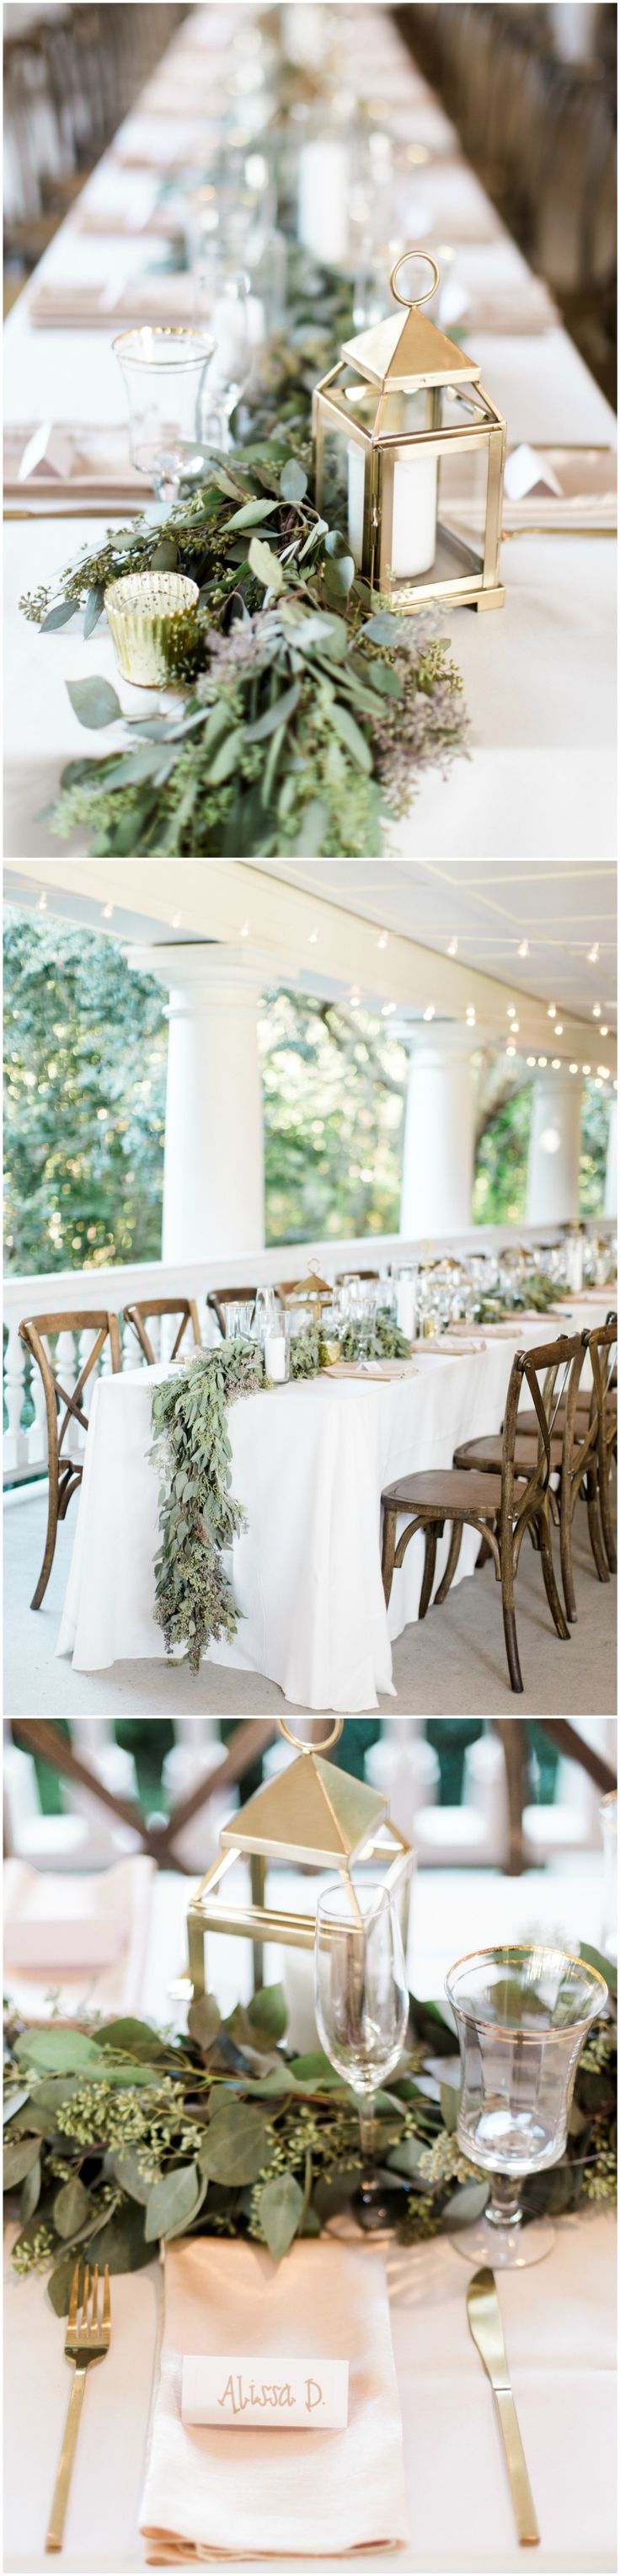 Natural wedding reception, leafy garlands, gold lanterns, gold flatware, brown cross-back chairs, long tables, white tablecloths, bistro lights // Rachel Red Photography